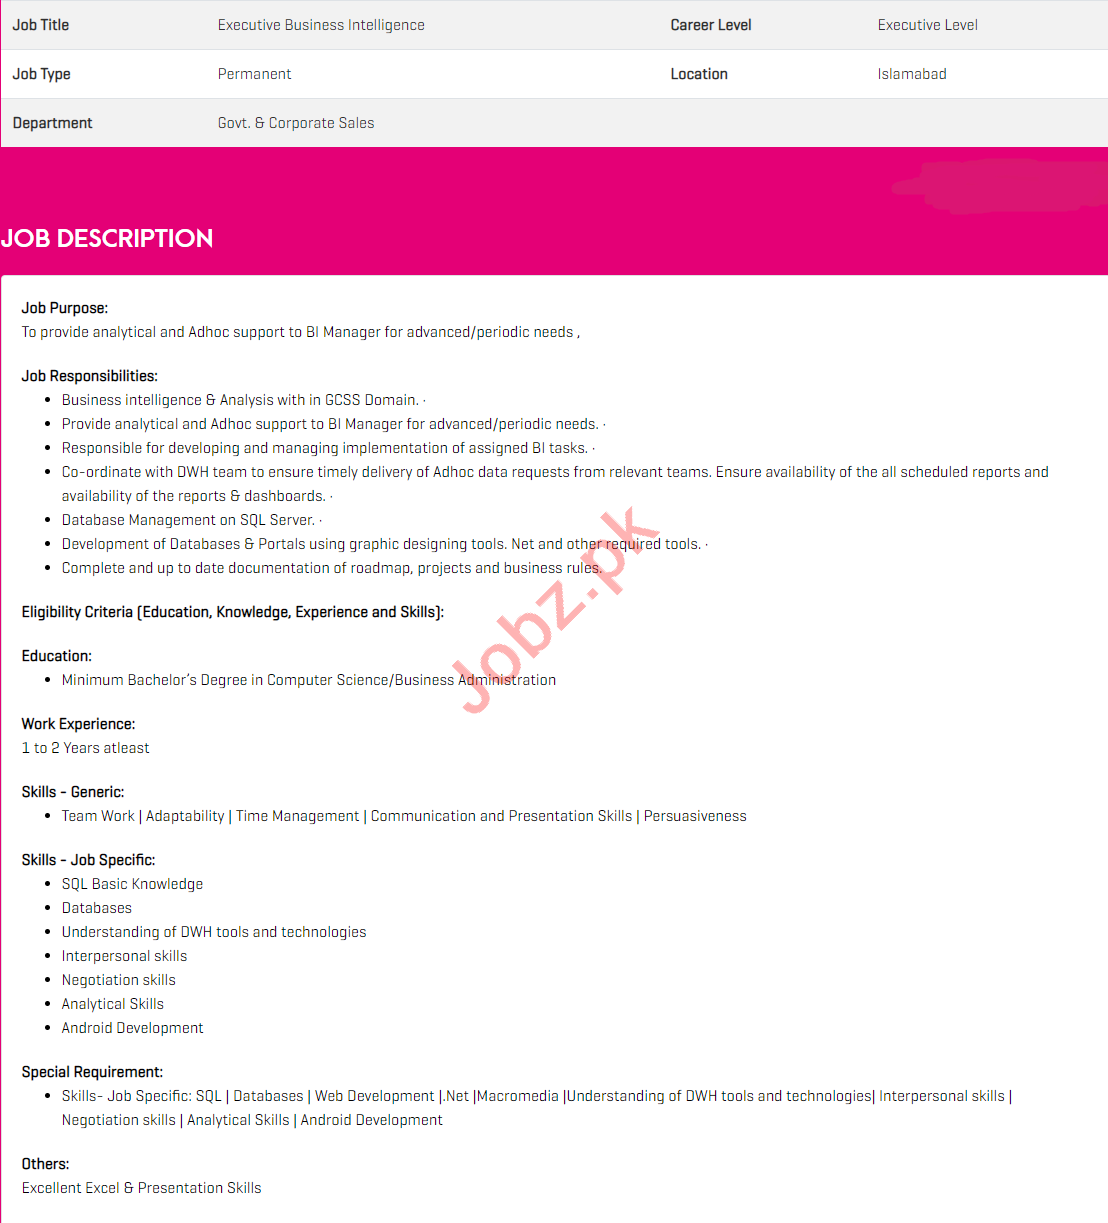 Executive Business Intelligence Jobs 2021 in Zong Pakistan